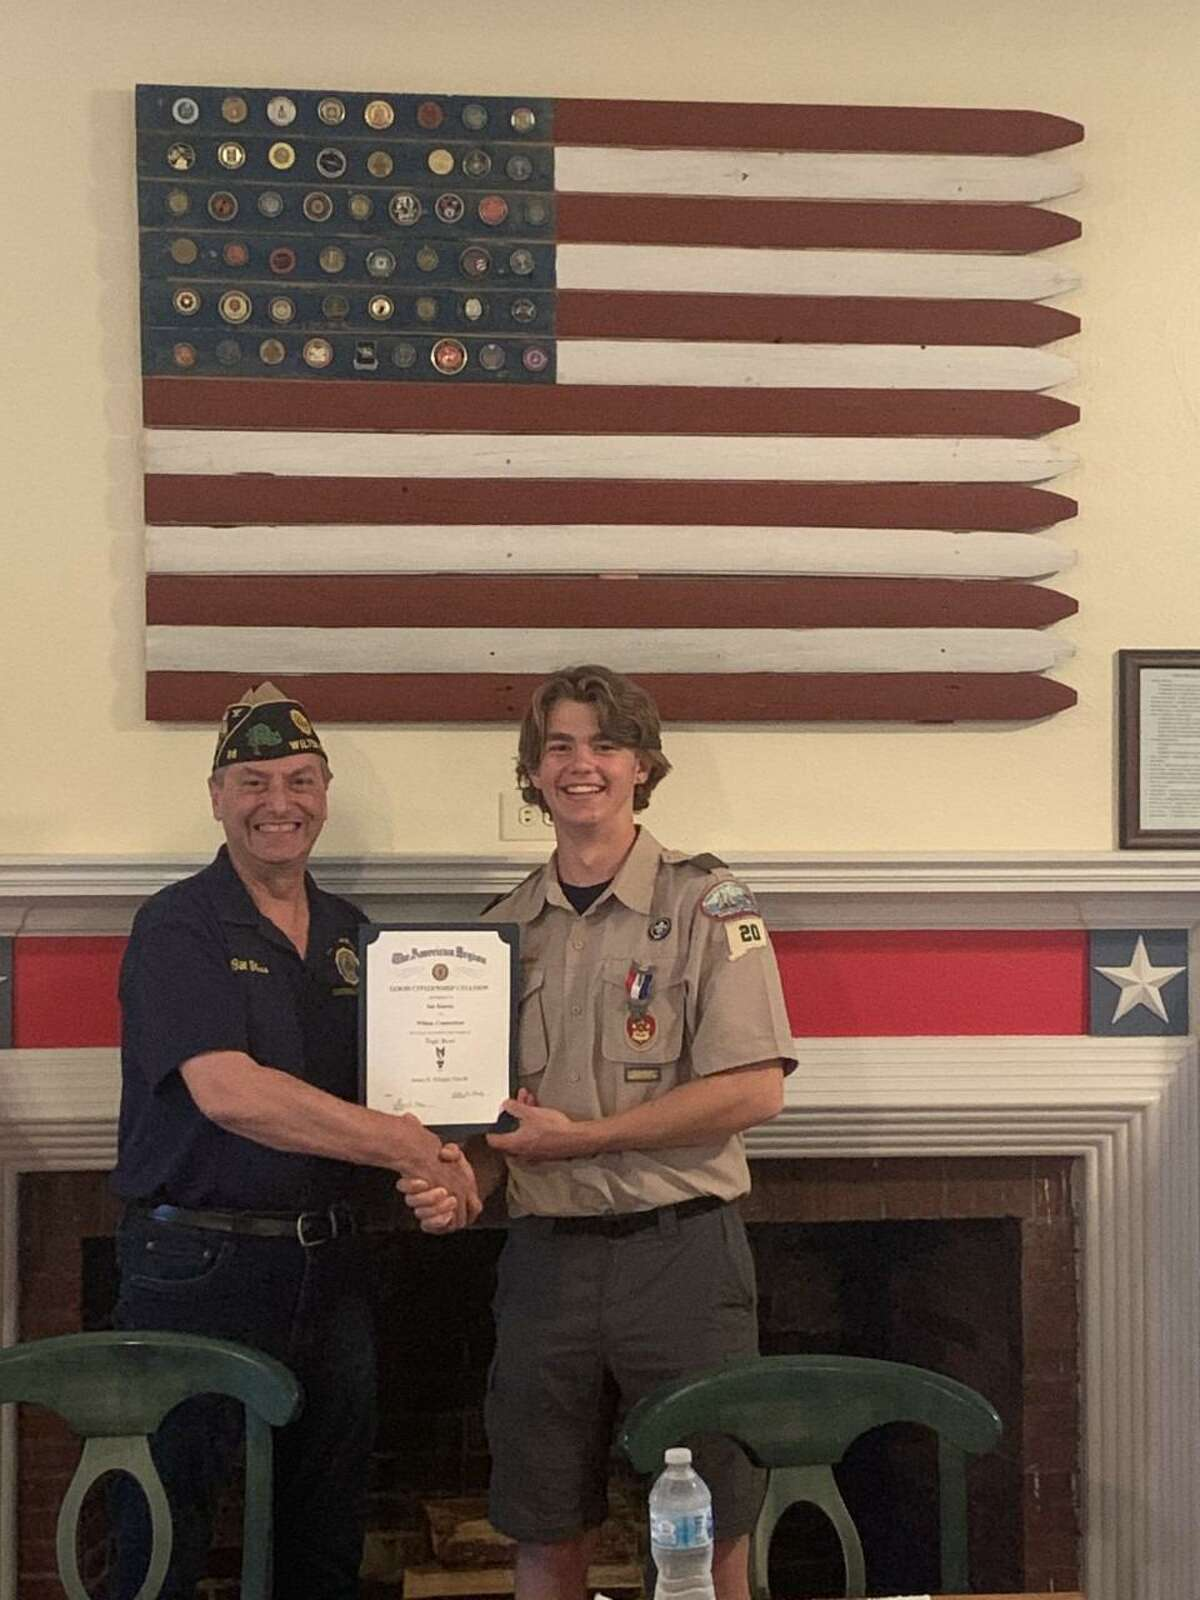 New American Legion Post 86 in Wilton officers were recently elected during the Post's regular meeting, June 8, 2021, for the Post's upcoming year, 2021-2022. At the same meeting, Wilton Troop 20 Eagle Scout Ian Kineon received The American Legion's Good Citizen Award for attaining the rank of Eagle Scout. Kineon's final project was to build the Post's Post 86 fire pit, where the members of the Post retire American Flags each year during a respectful, and solemn ceremony. The Post is sponsoring a collection of goods for the men, and women of the veterans organization, the Homes for the Brave / PFC Nicholas Madaras Homes for homeless veterans, in Bridgeport, from Saturday, July 17, through Saturday, July 24, at the Post.